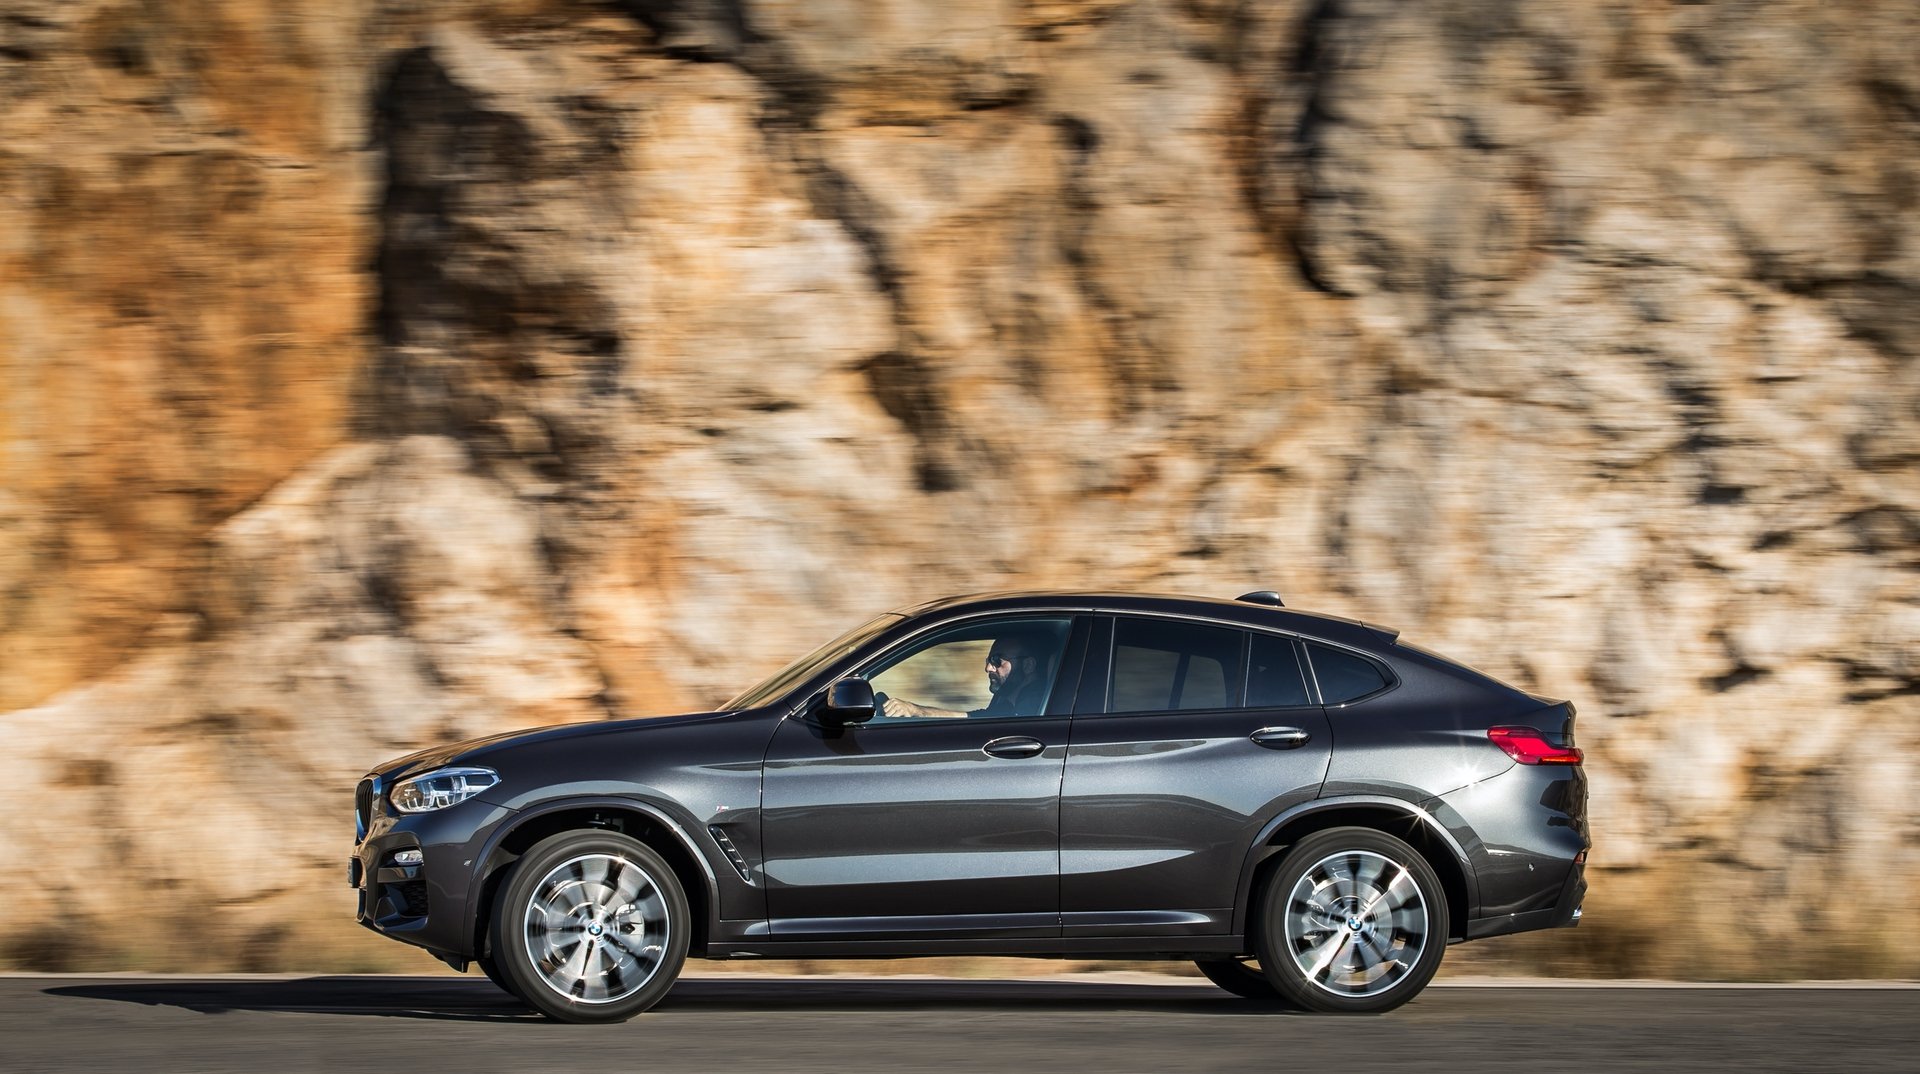 BMW_X4_greek_presskit_0079